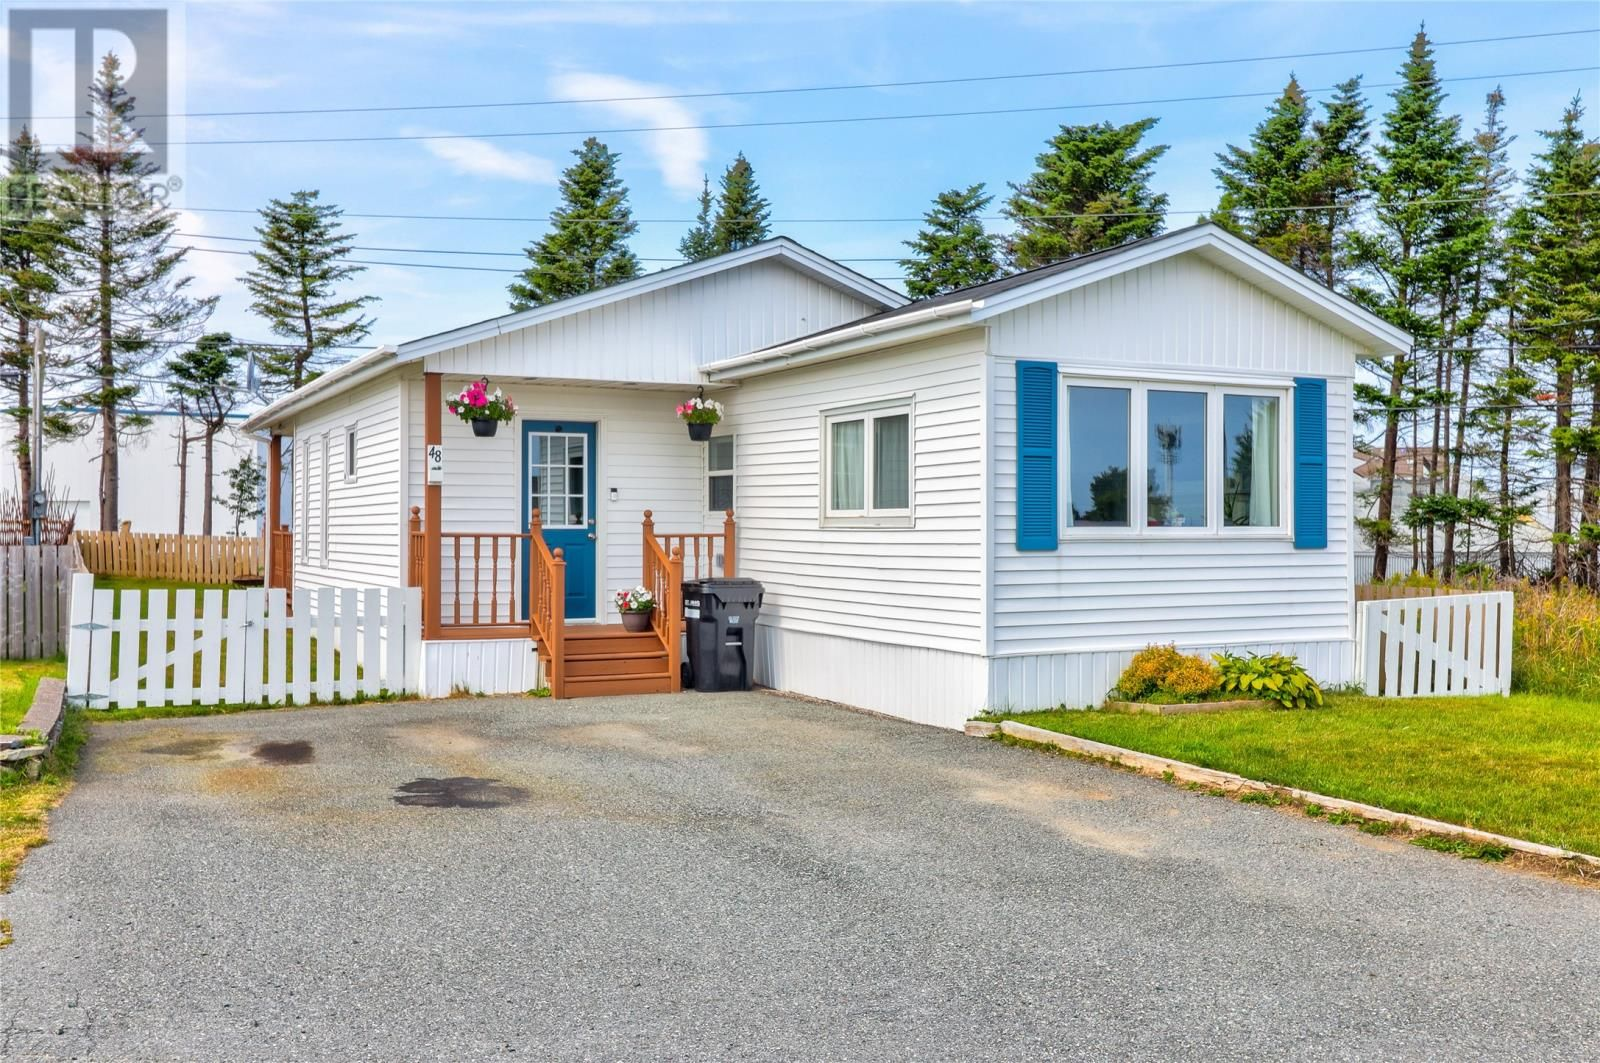 Main Photo: 48 Hussey Drive in St. John's: House for sale : MLS®# 1235960